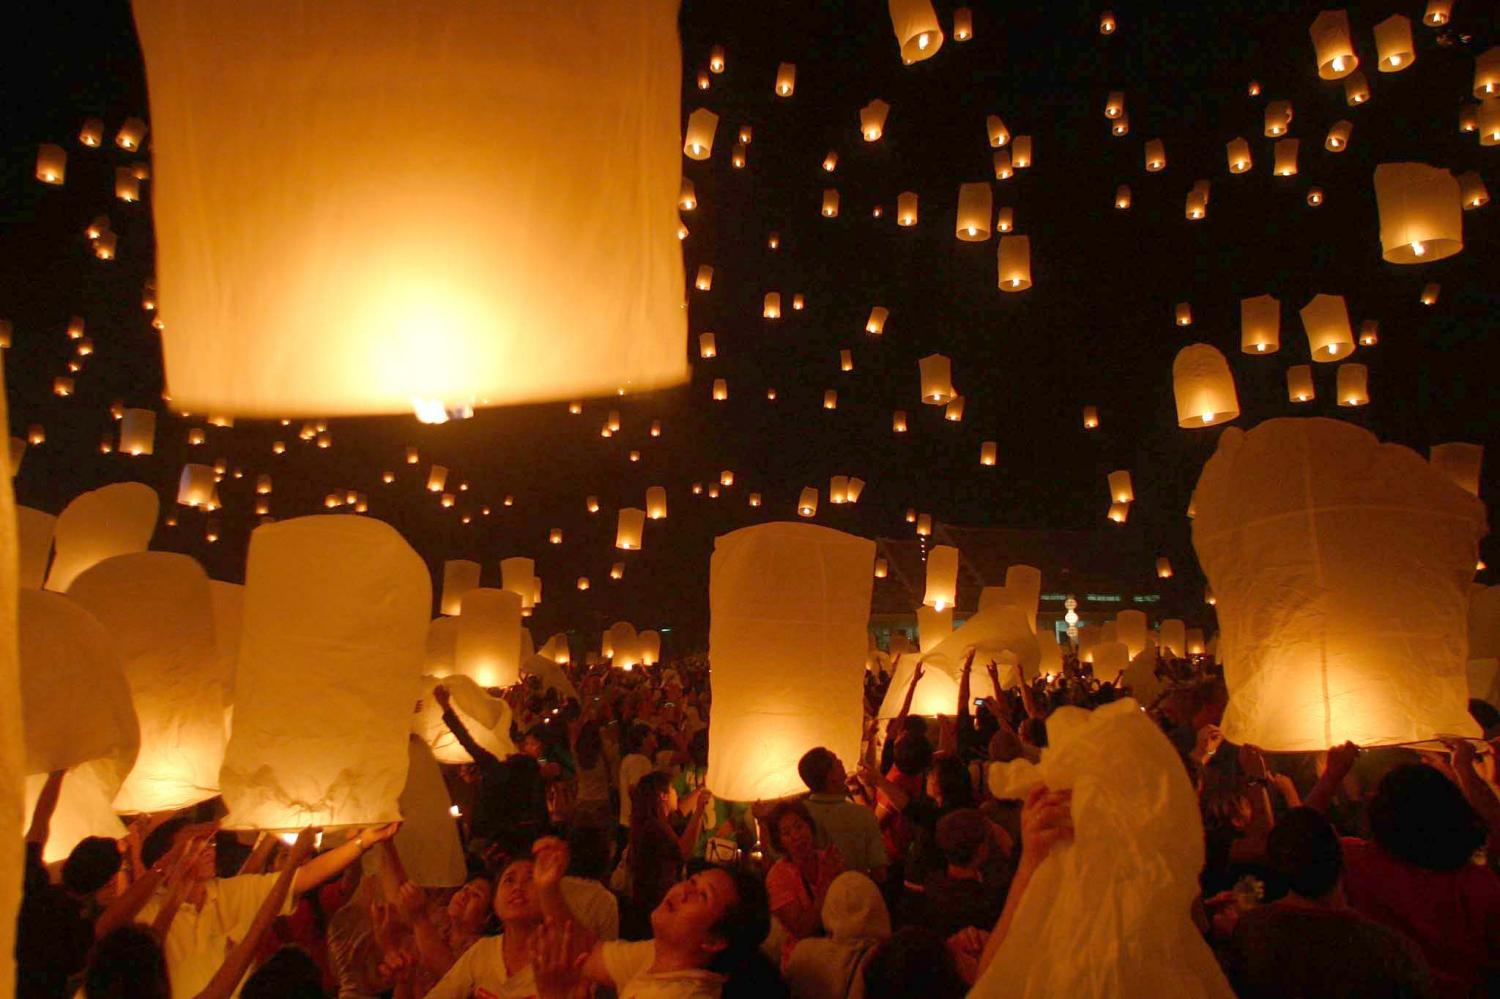 Famed festival of lights to illuminate the nation